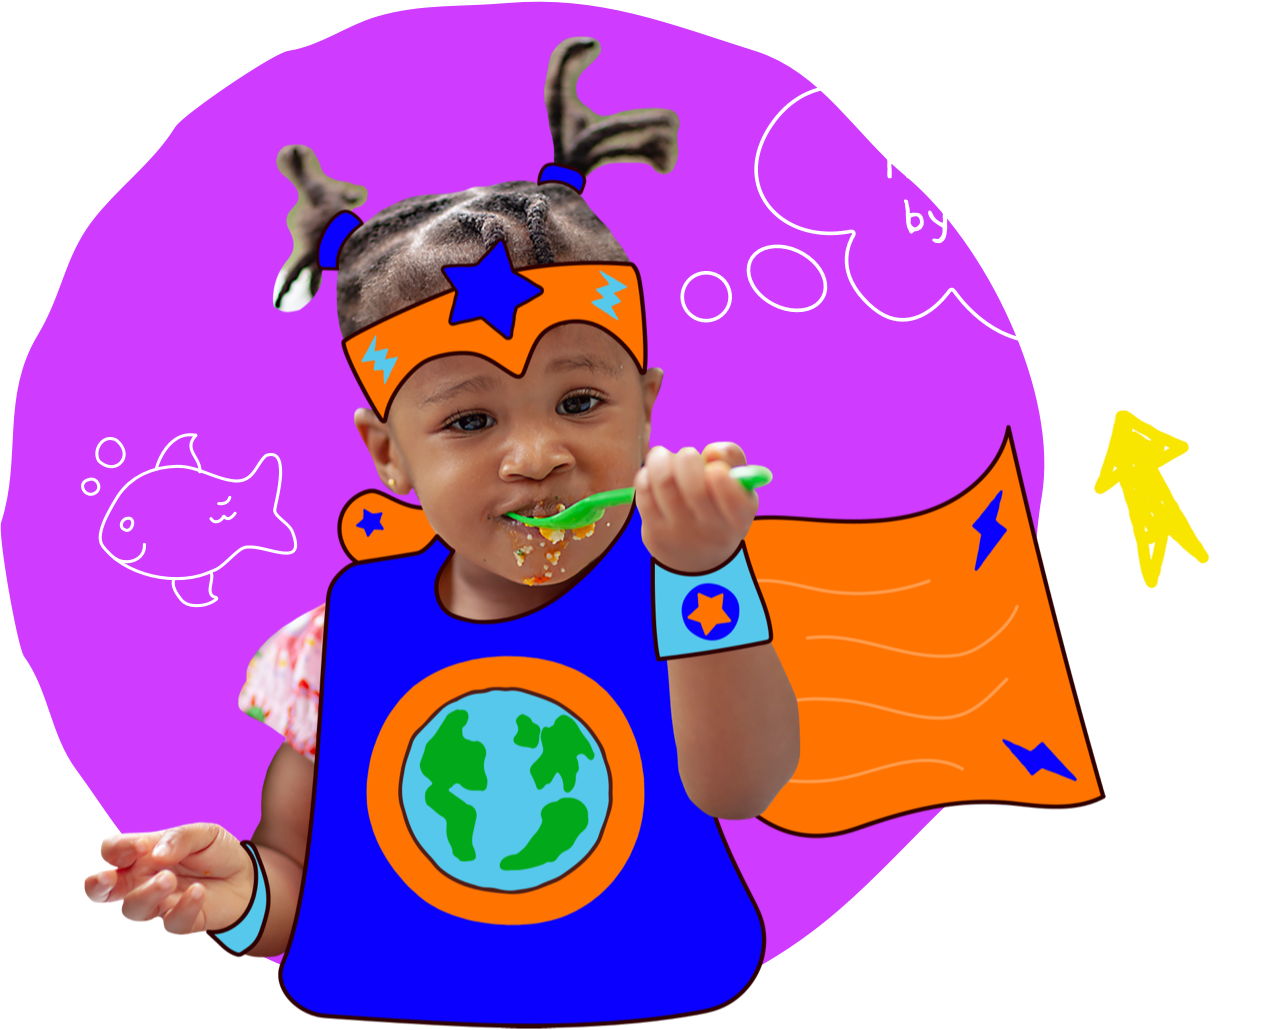 Hero image for Good for the planet